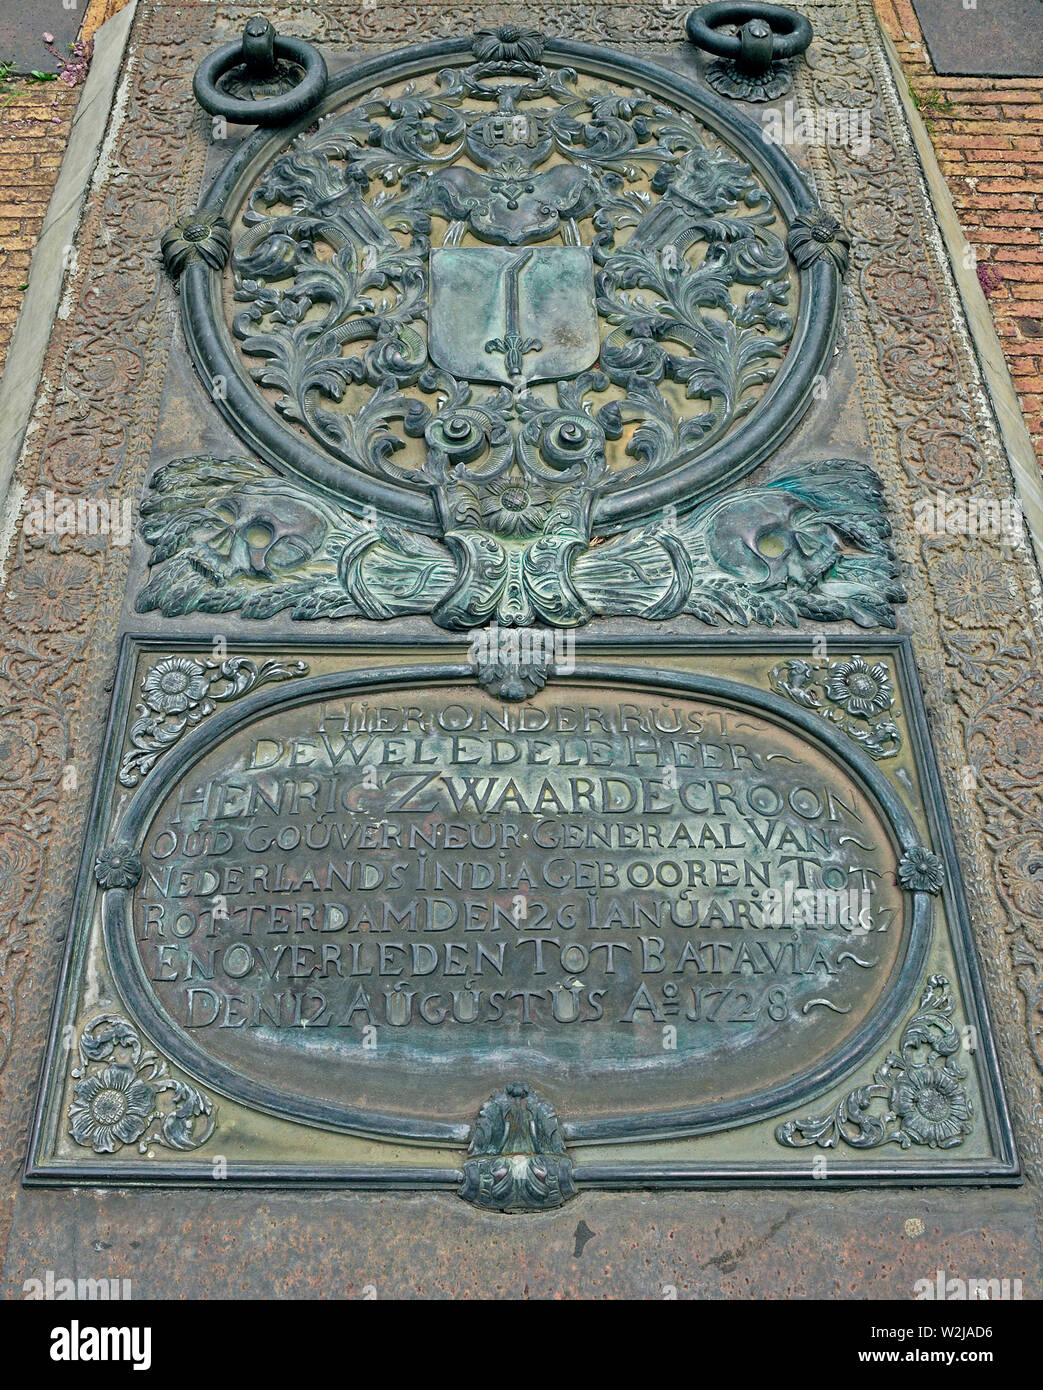 jakarta, dki jakarta/indonesia - september 17, 2007: tomb plate of governor general  henric zwaardecroon who died on august 12, 1728 at sion church on - Stock Image